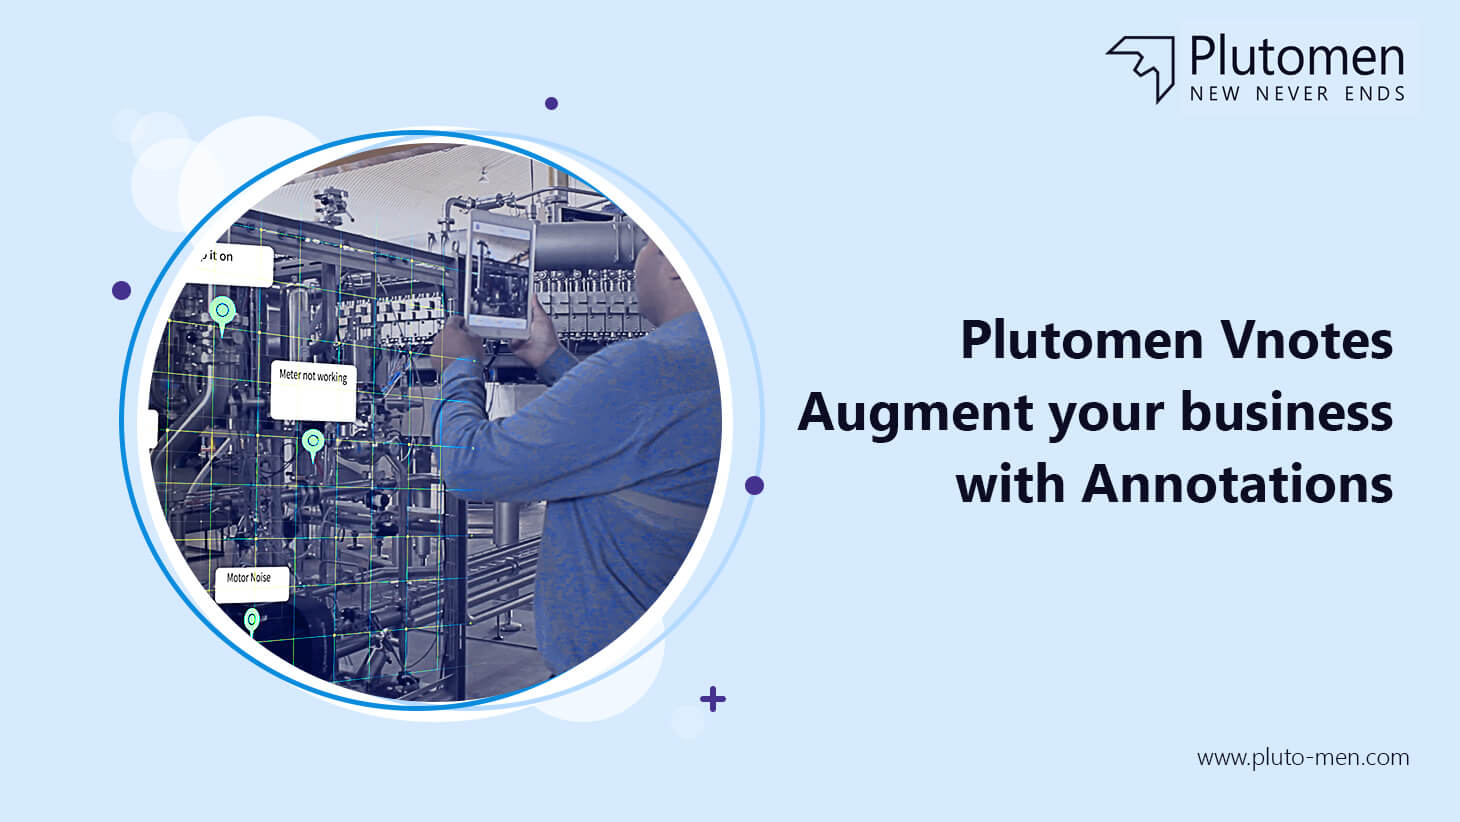 Plutomen Vnotes – Augment your business with annotations